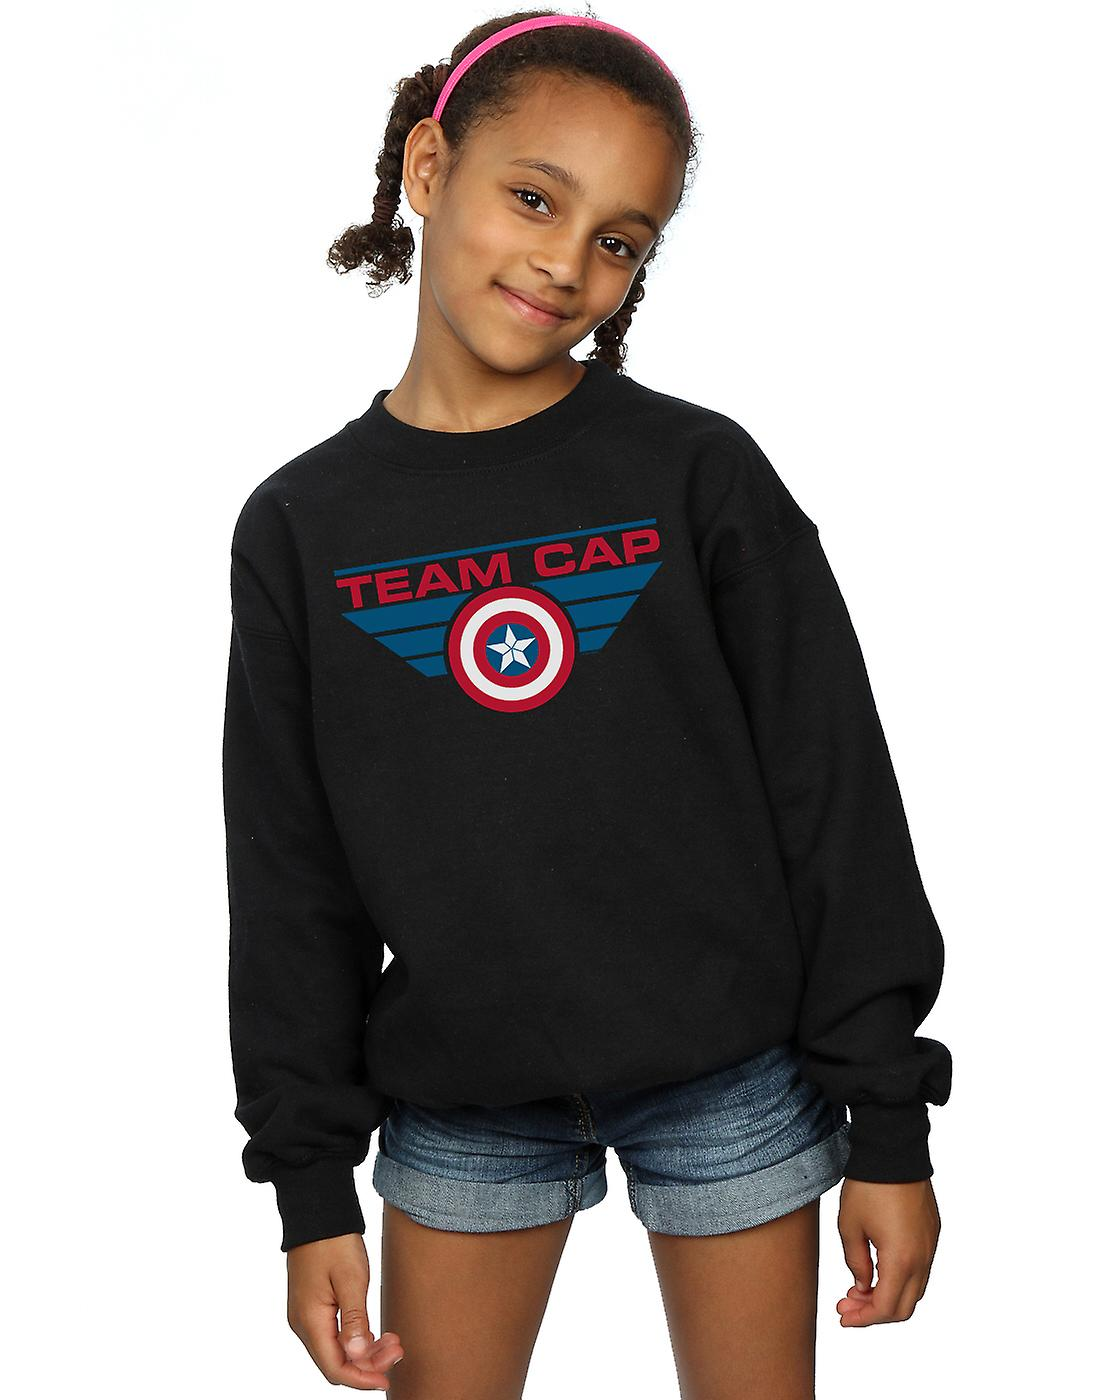 Marvel Girls Captain America Civil War Team Cap Sweatshirt